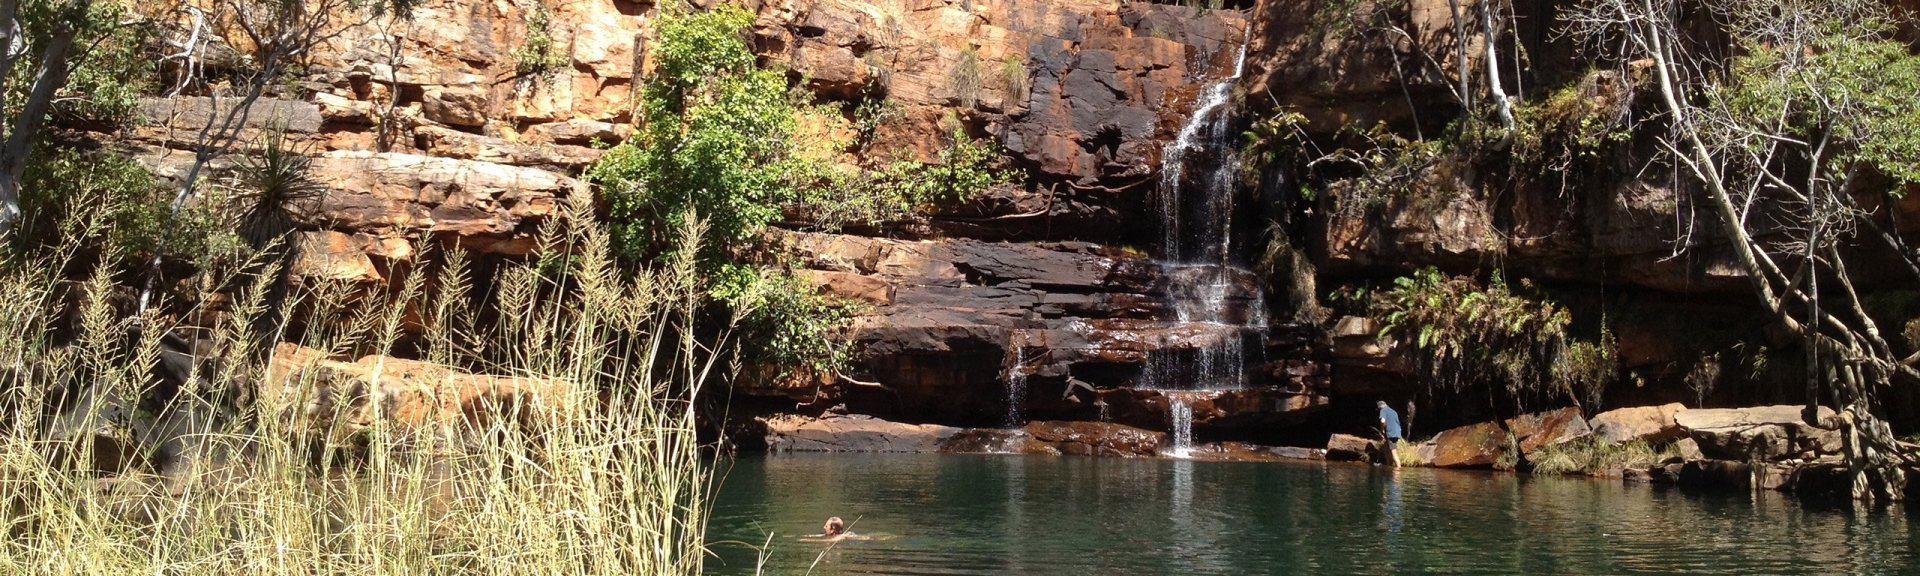 Kakadu landscape. Photo: Heritage Safari 4WD Tours